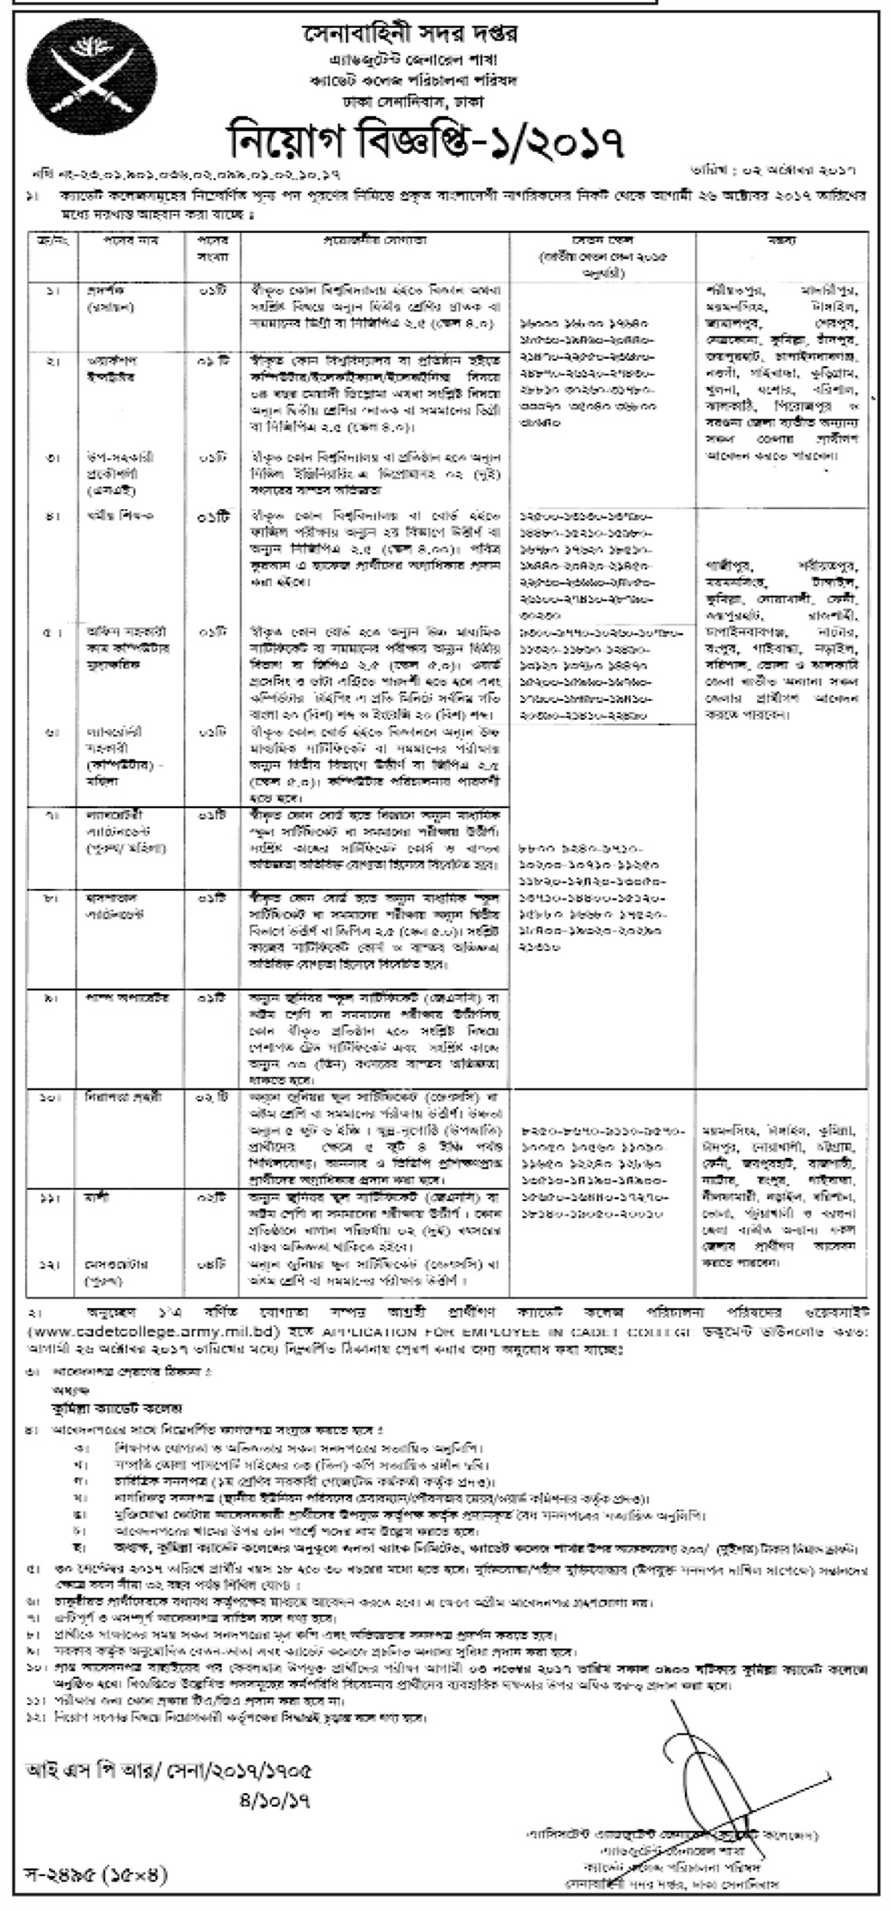 Army Headquarters Recruitment Notice 2017